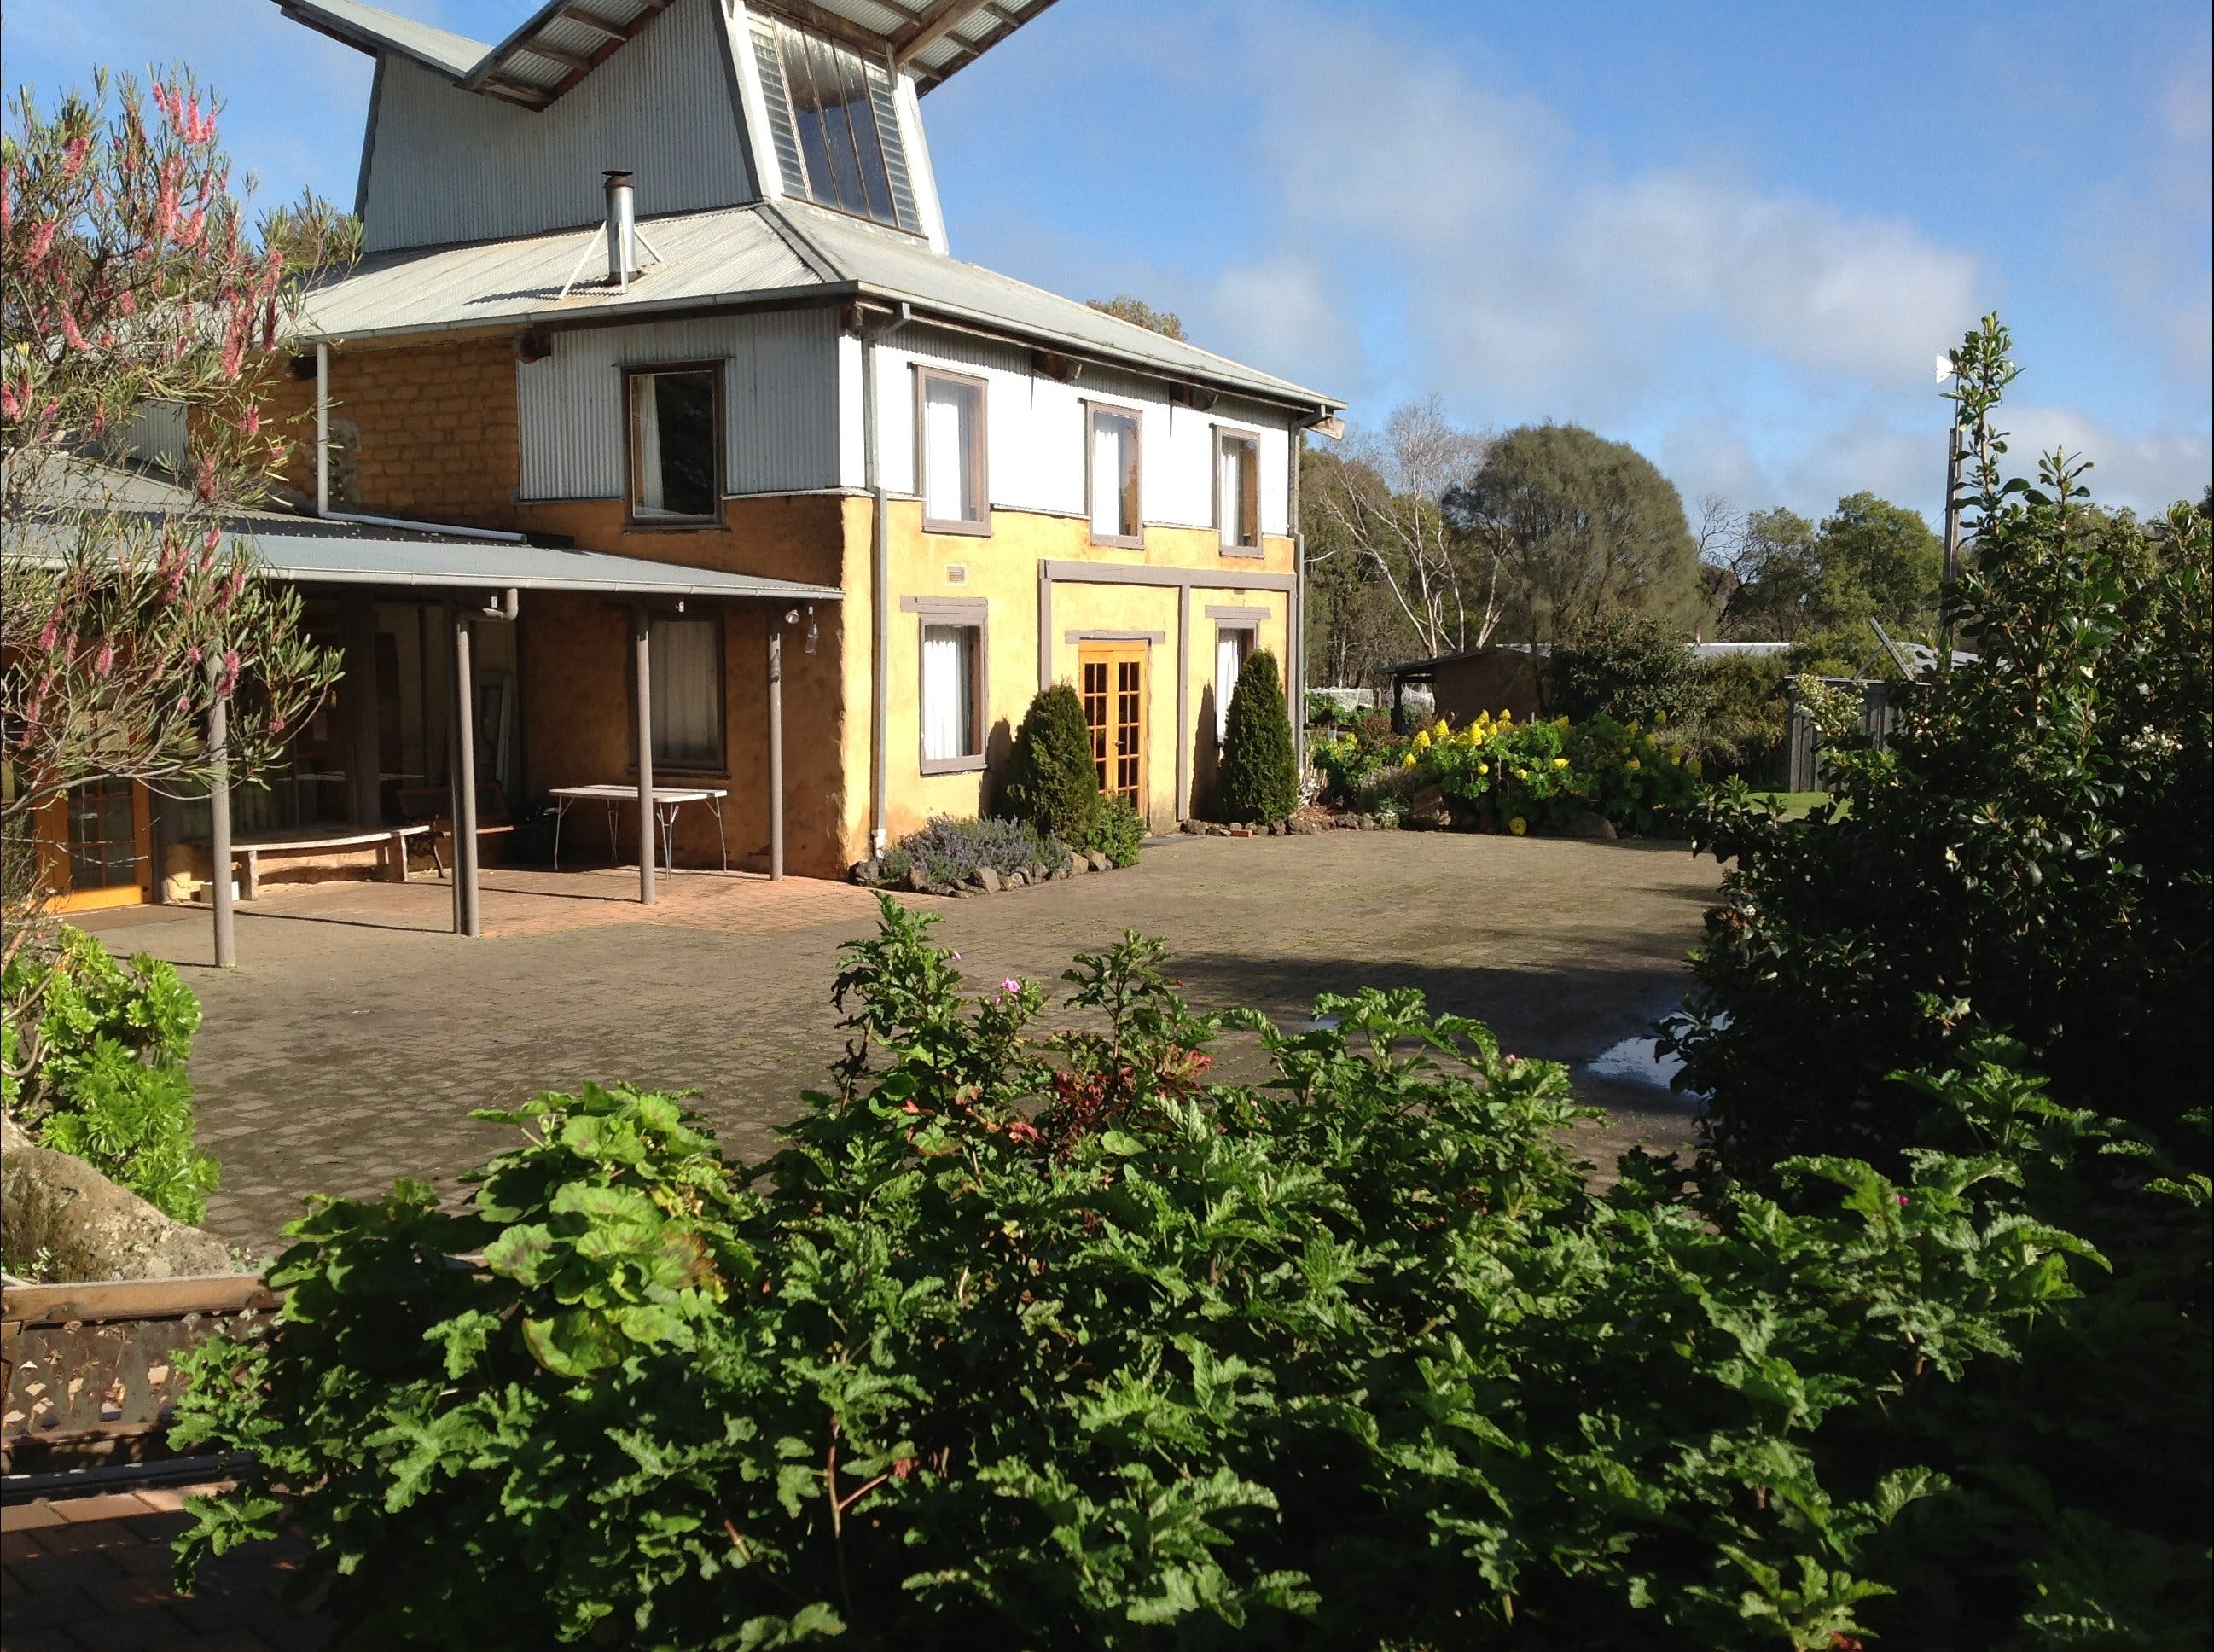 HIRL Hamilton Institute of Rural Learning - Accommodation Tasmania